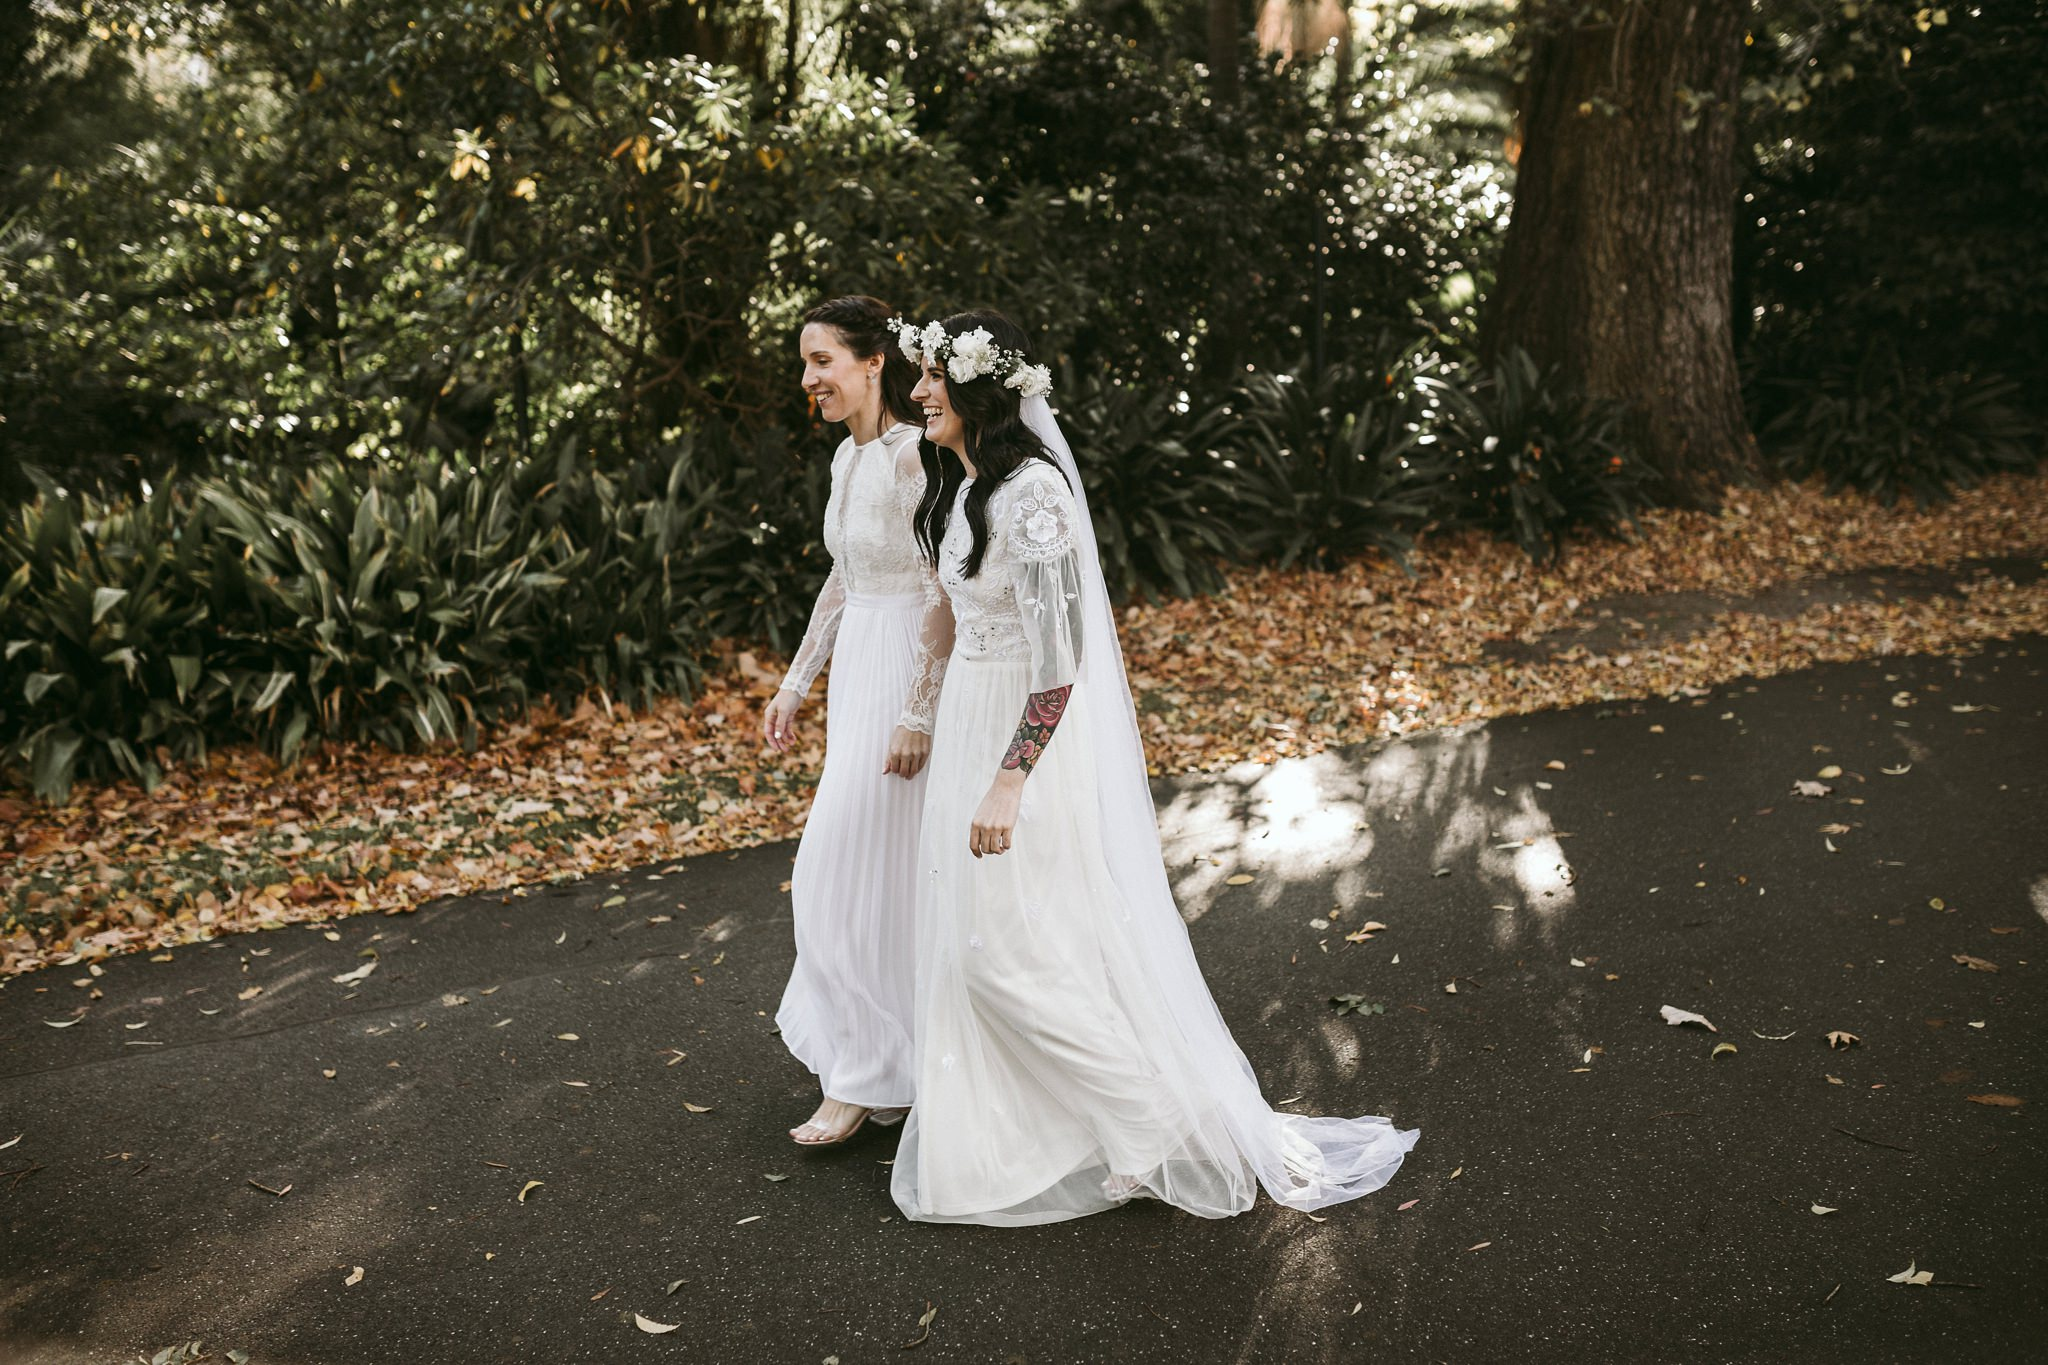 Melbourne Alternative Elopement Photography / Fun candid tiny wedding in Melbourne / Fitzroy Gardens Relaxed Elopement Photography / Melbourne Wedding Photography / Gold and Grit Photography